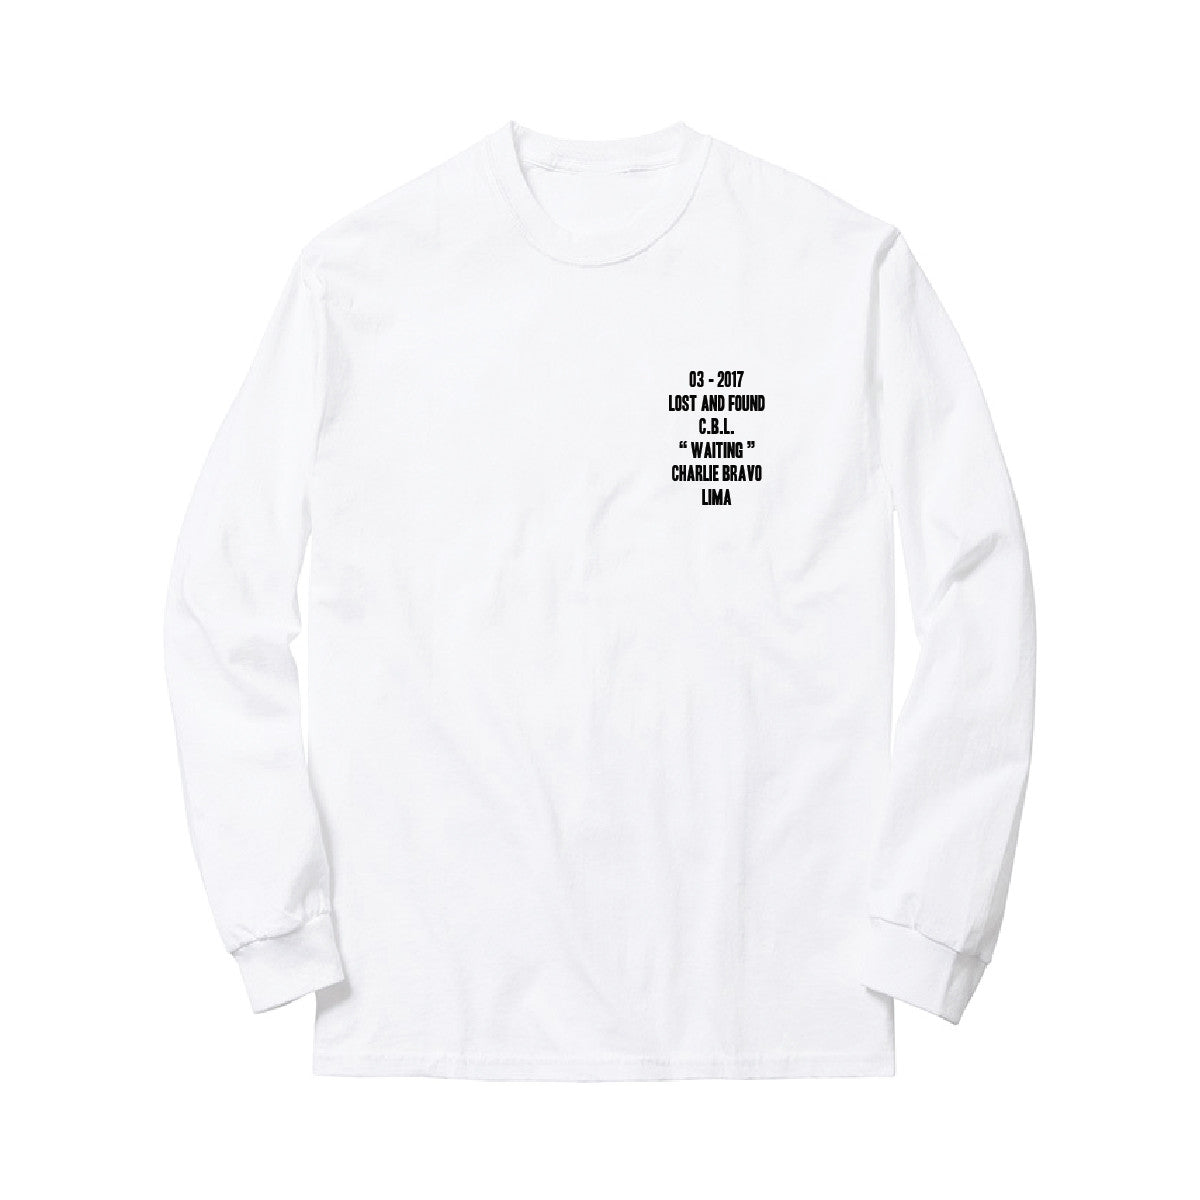 CASH - LONG SLEEVE - WHITE